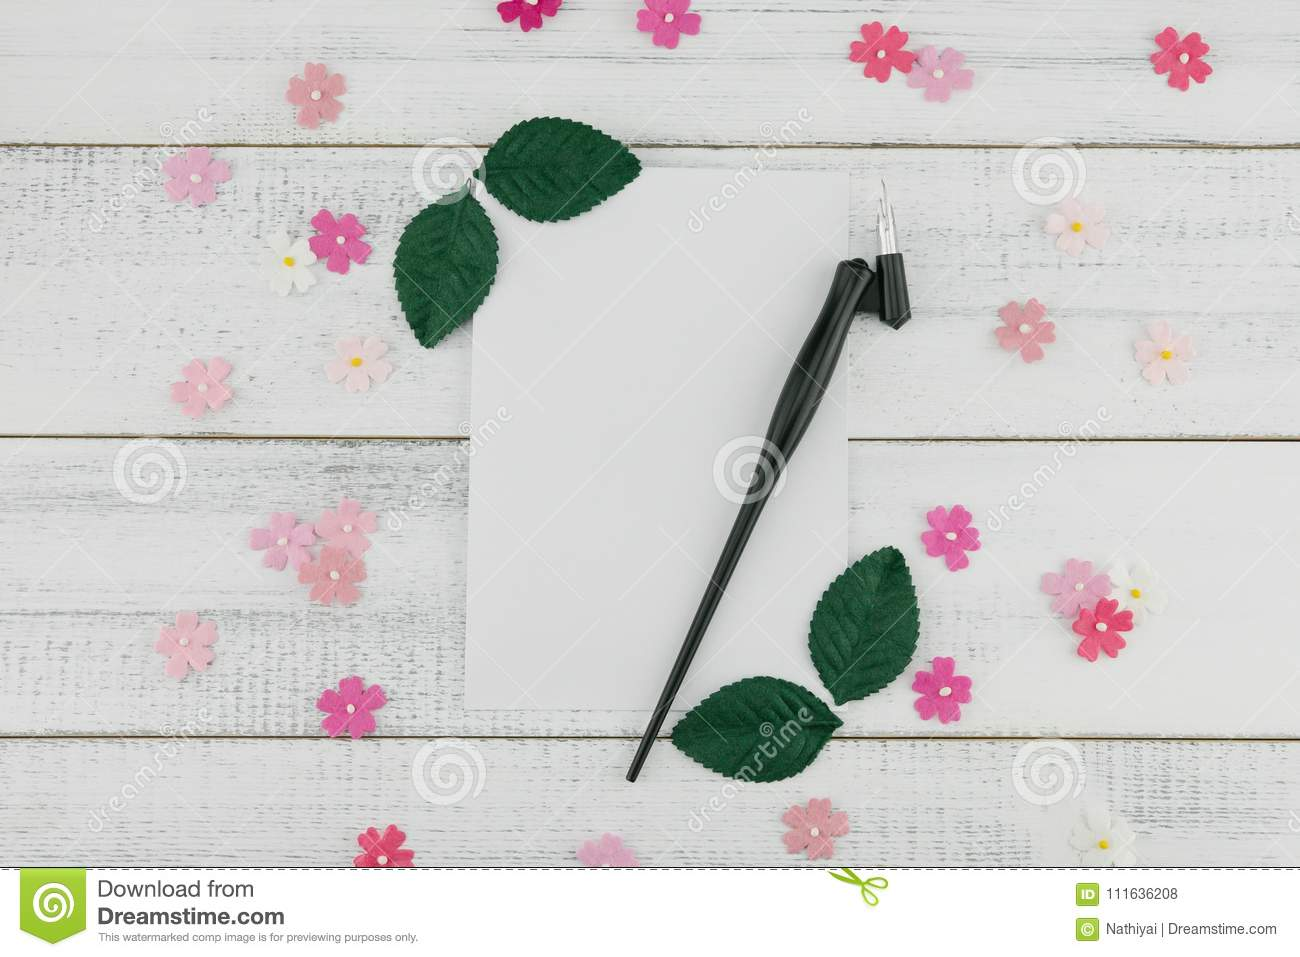 055d201e9f4 Blank white card and oblique pen decorate with pink paper flowers and green  leaves on white wood background